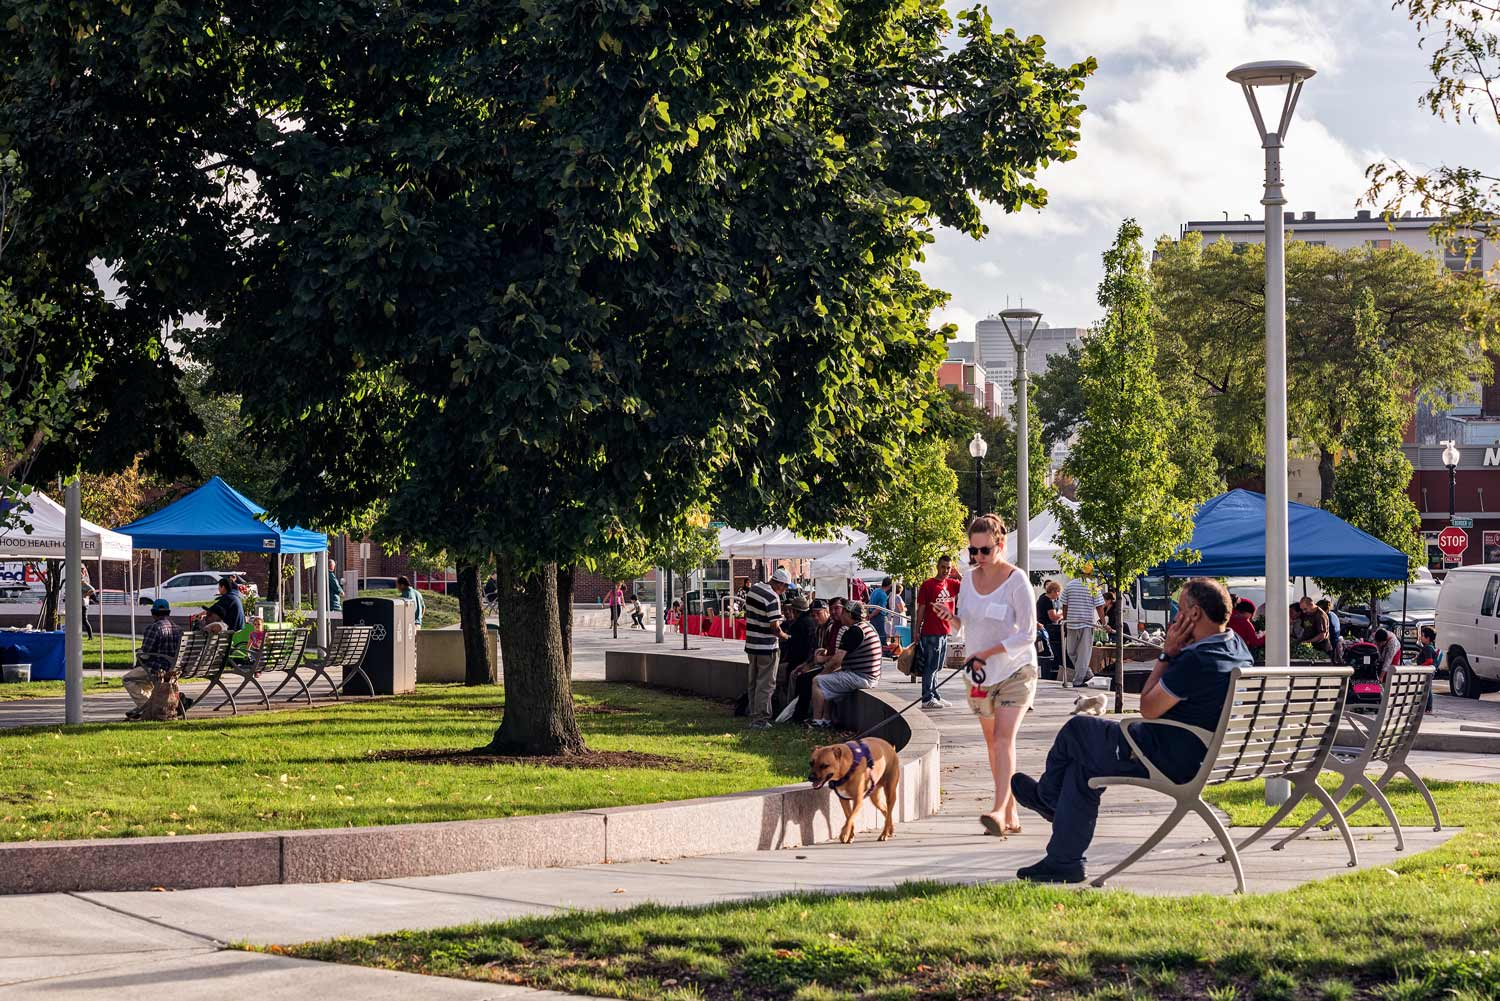 Central-Square-East-Boston_farmers-market-urban-park-seating_Klopfer-Martin.jpg